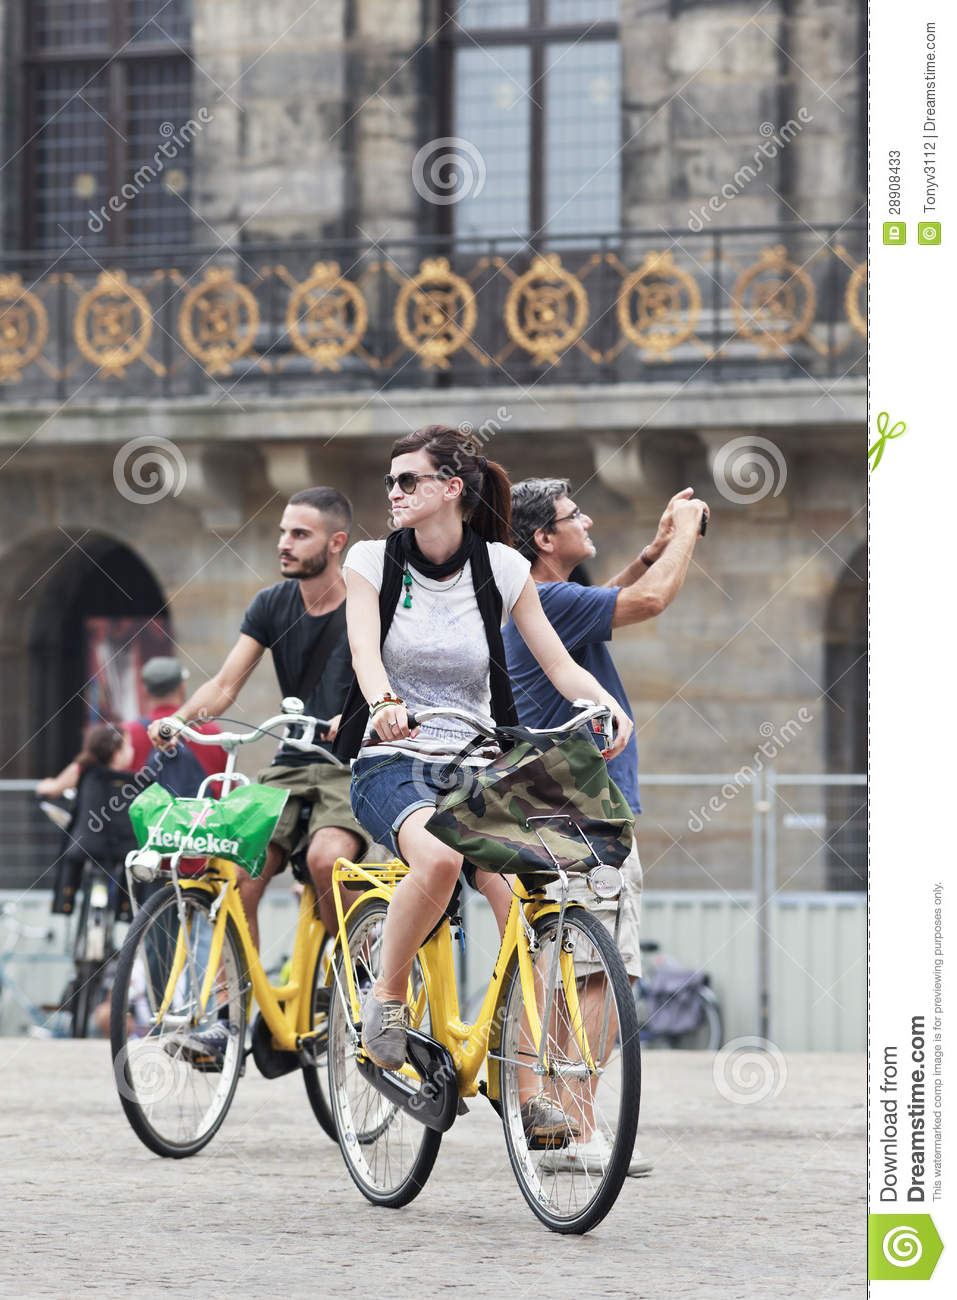 0f70e0f7f6e28 Cycling tourists on Aug. 19 in Amsterdam. 38% of traffic movement in the  city is by bike , 37% by car, 25% by public transport.